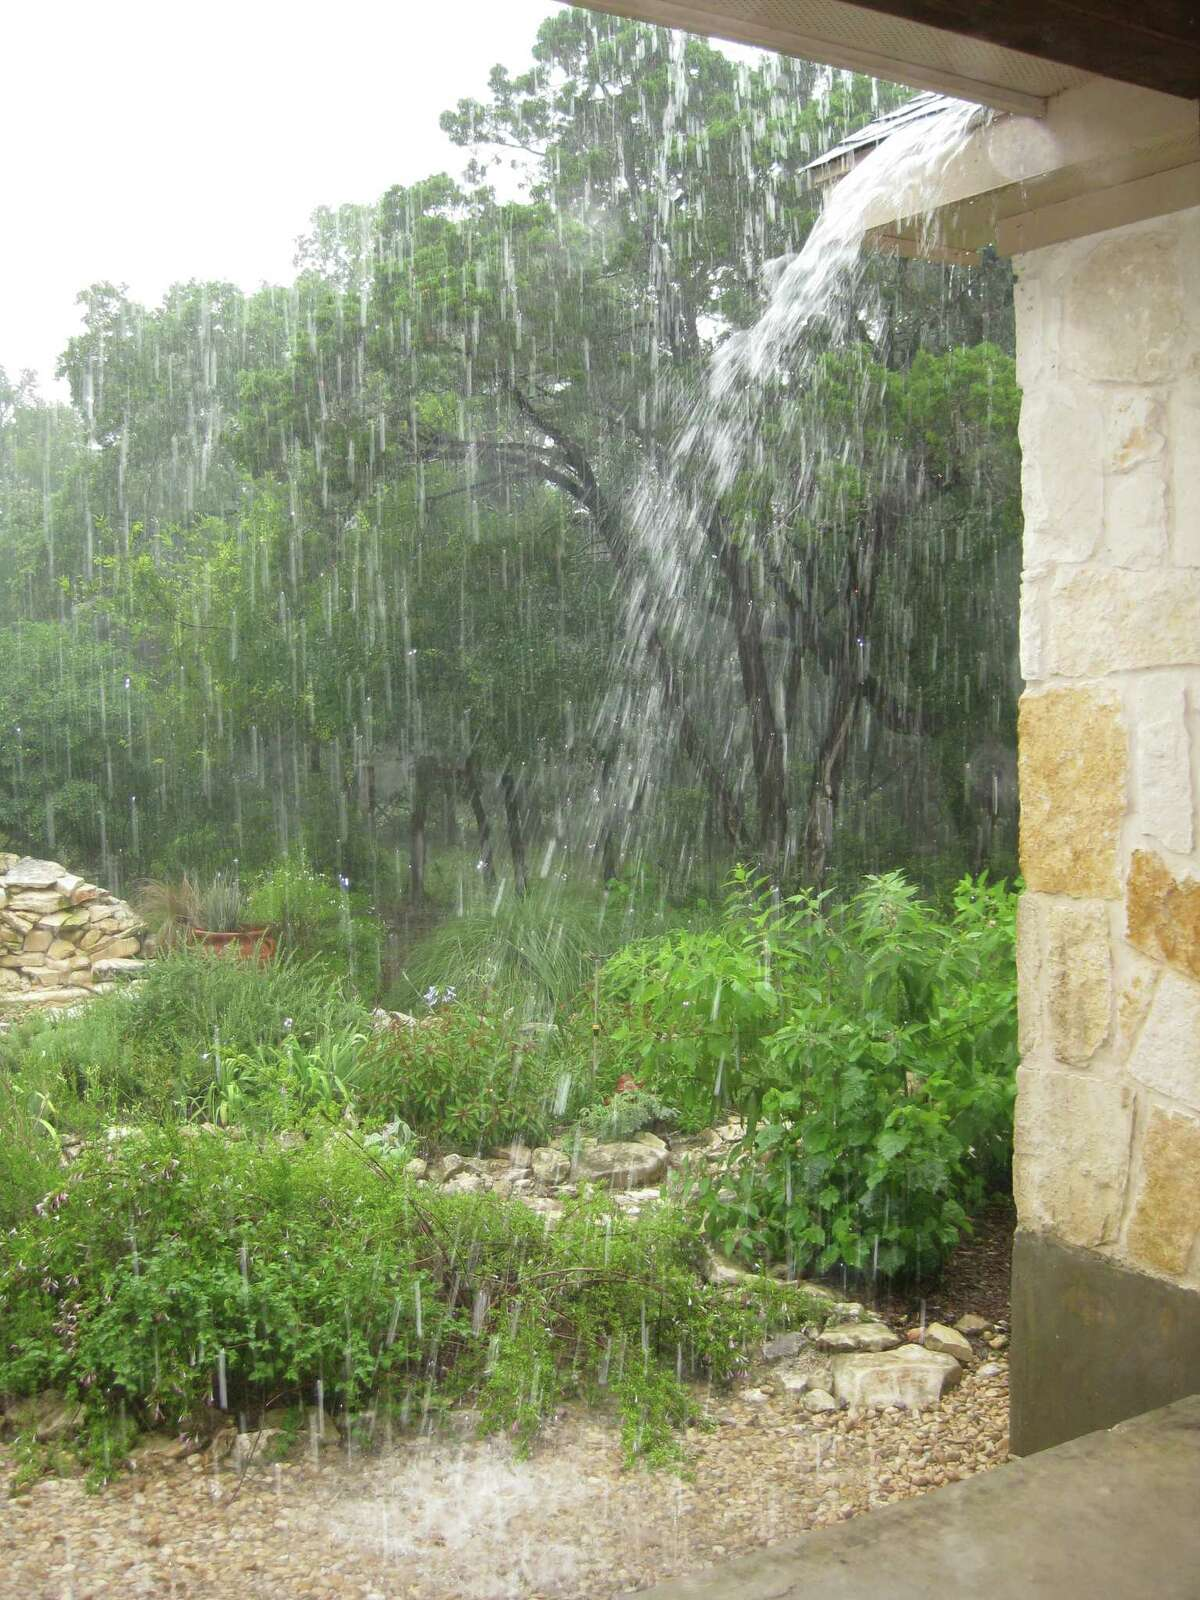 Steady rains in 2015, especially in May, have saturated the ground and created unfamiliar issues for gardeners accustomed to drought. Good drainage and careful choice of plants can keep gardens looking good in drought or downpours, both facts of life in the region.